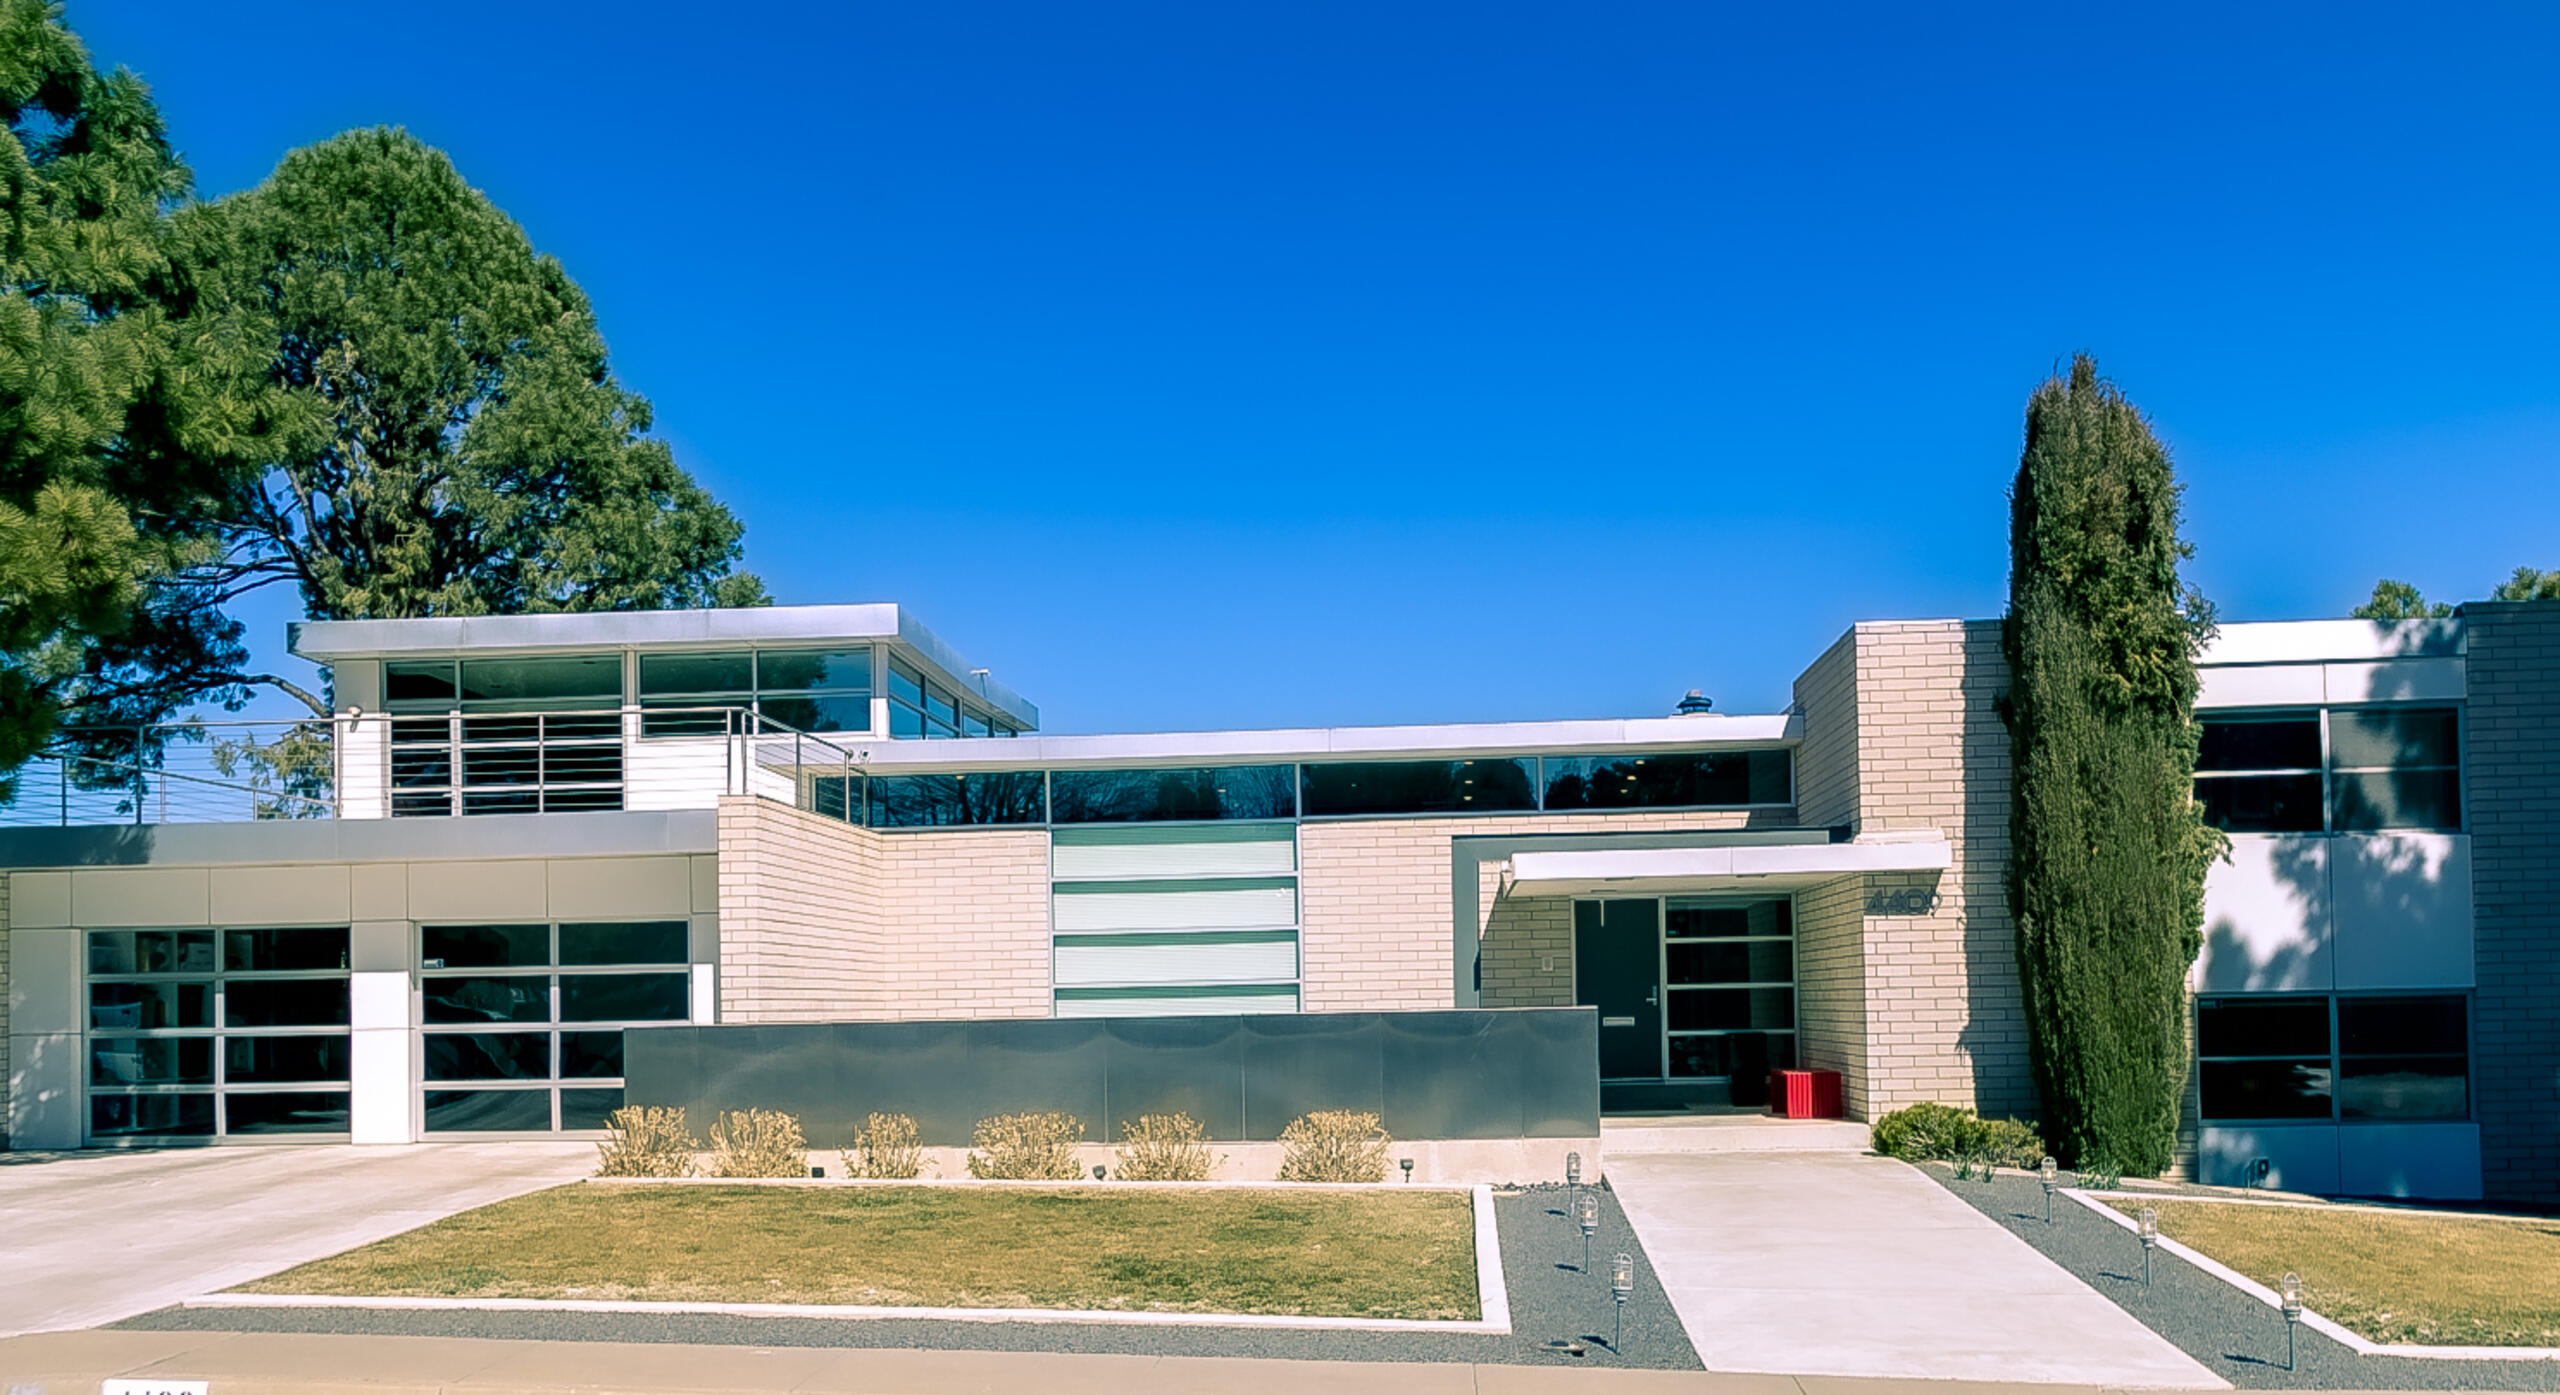 A mid-century contemporary home of enormous style and distinction in Altura Park, 4409 Chinlee Ave NE offers both an outstanding mid-city location and exceptional design. Originally constructed in 1963 by Mossman then brilliantly re-imagined by noted local architect Jon Anderson. Three living areas, open kitchen with breakfast nook, four bedrooms each with en suite bath and walk-in closet, plus upper-level rec room with butterfly ceiling and roof deck offering incredible mountain views. An expansive covered patio with fireplace and outdoor kitchen, green lawns, azure pool, hot spa and pool house allow for the zenith in outdoor living. This, truly, is an incomparable, breathtaking residential experience.